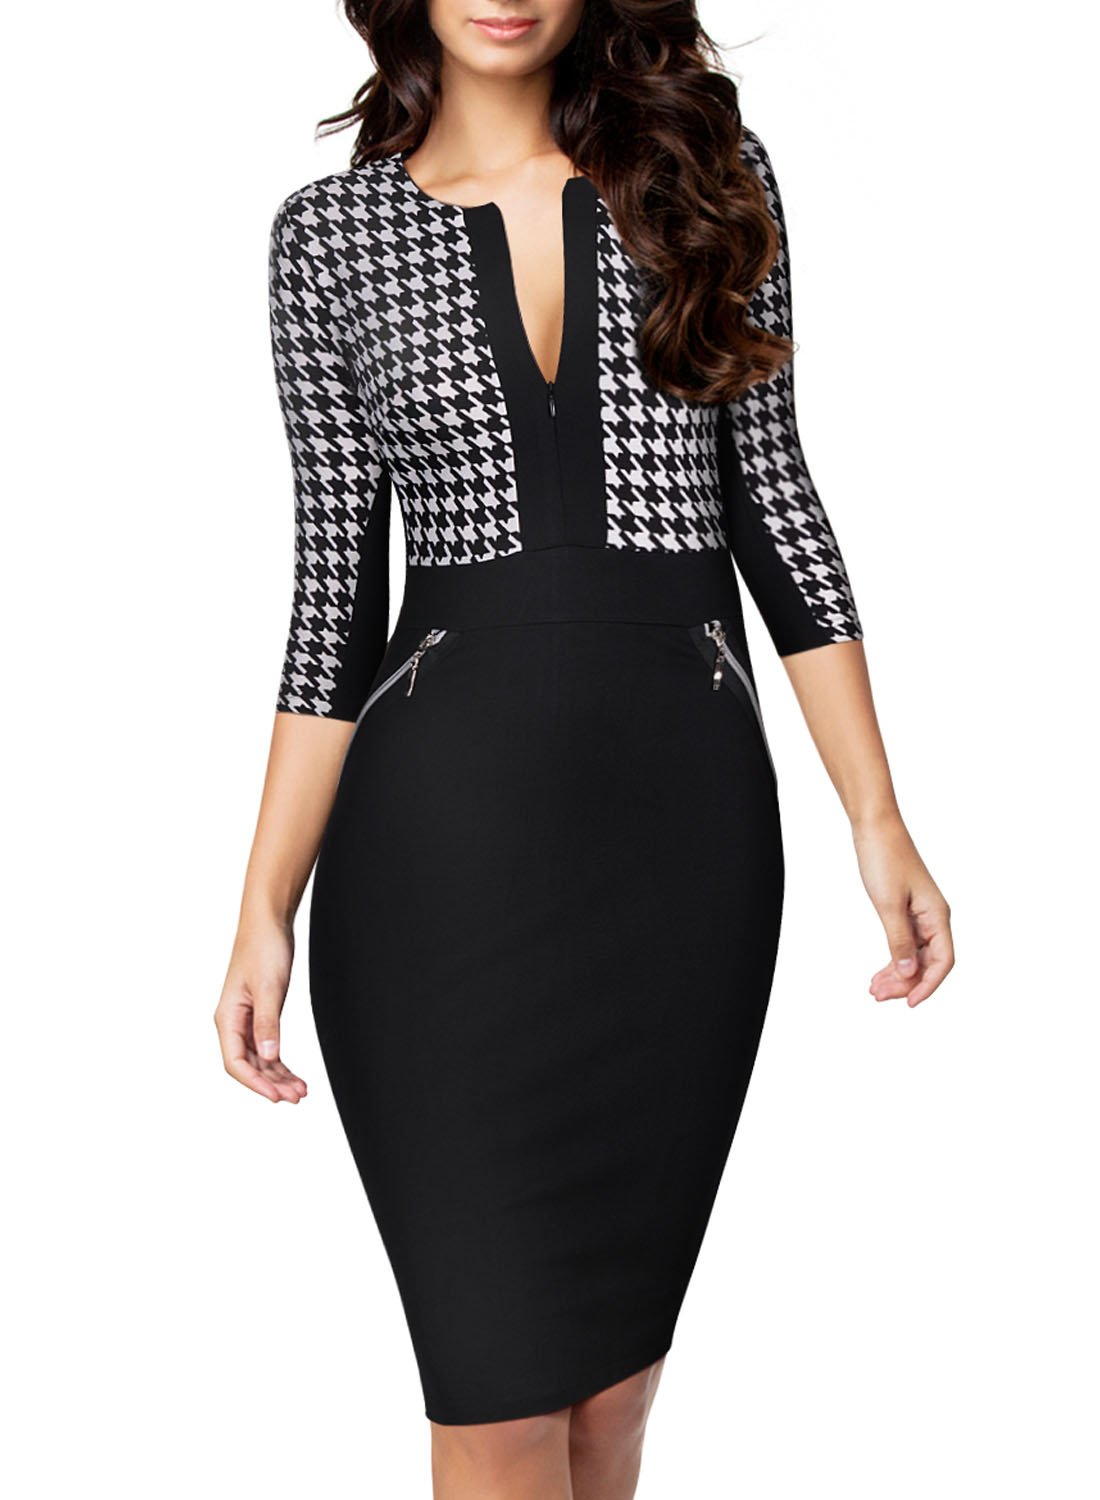 Miusol Women Formal Houndstooth-Print Optical Illusion 2/3 Sleeve Business Dress Black Large by Miusol